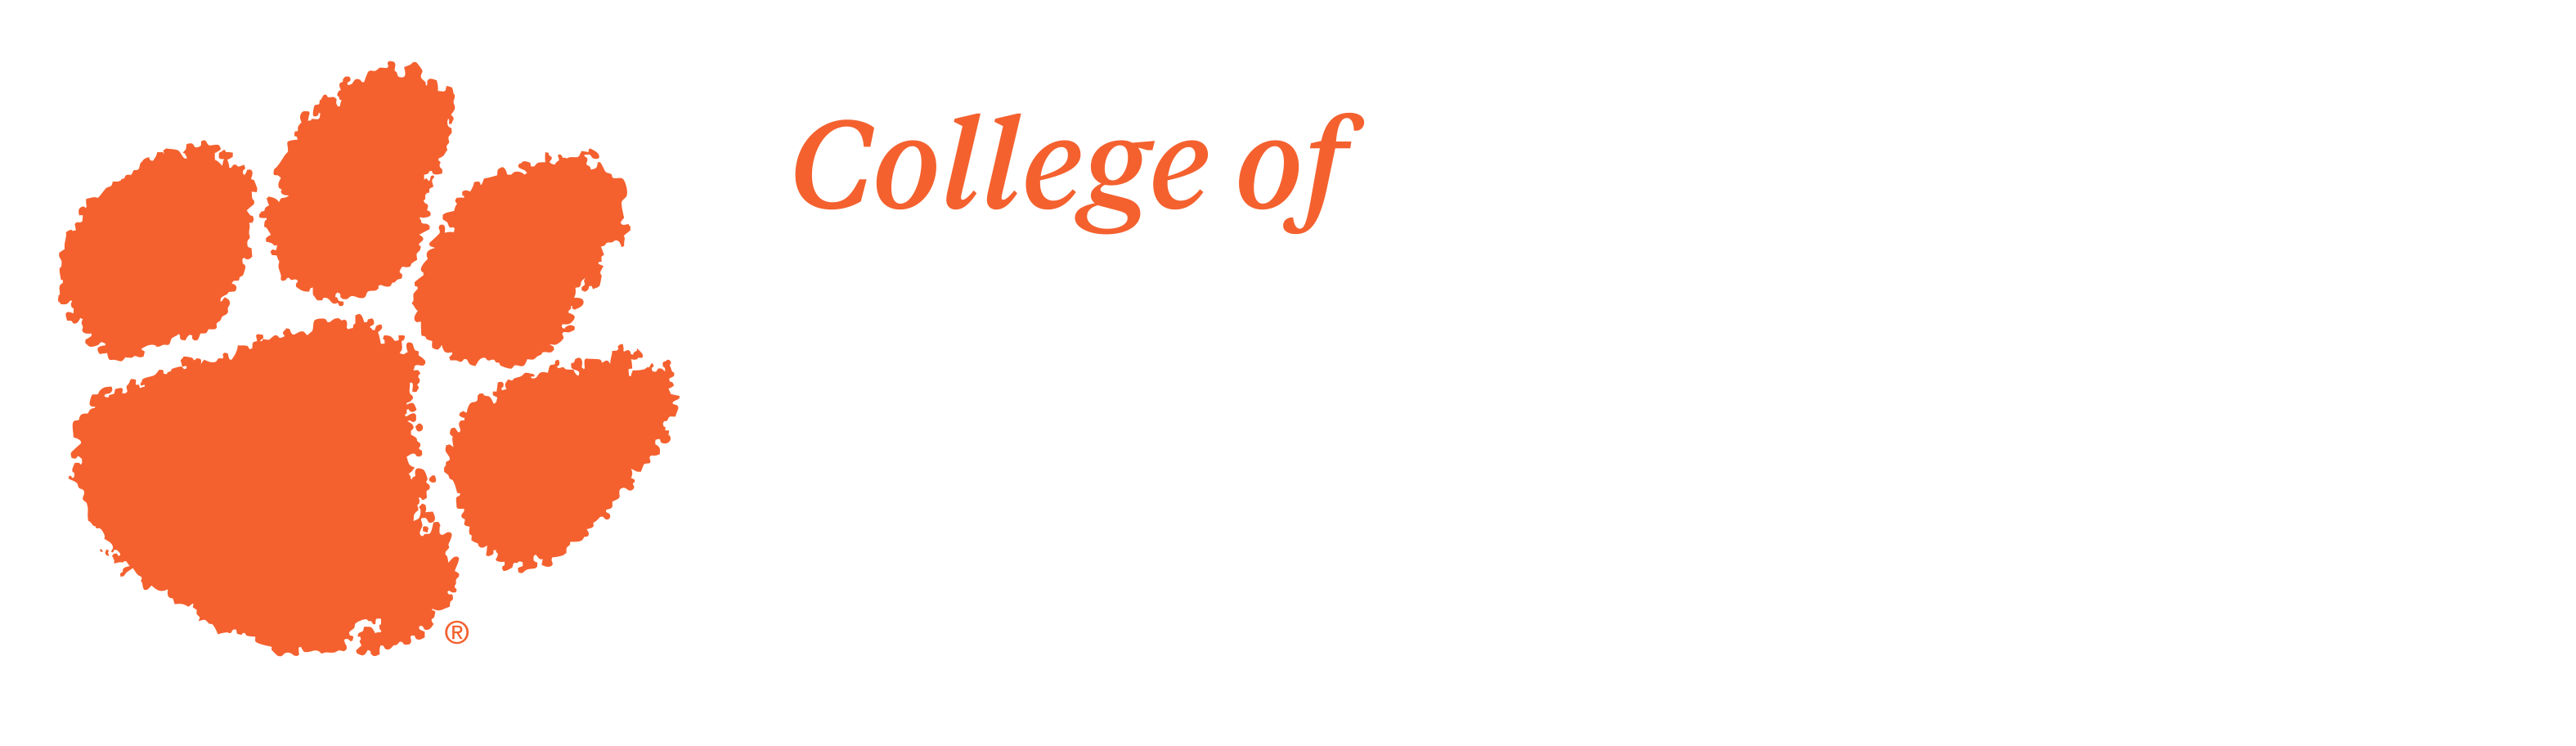 College of Engineering, Computing and Applied Sciences, South Carolina